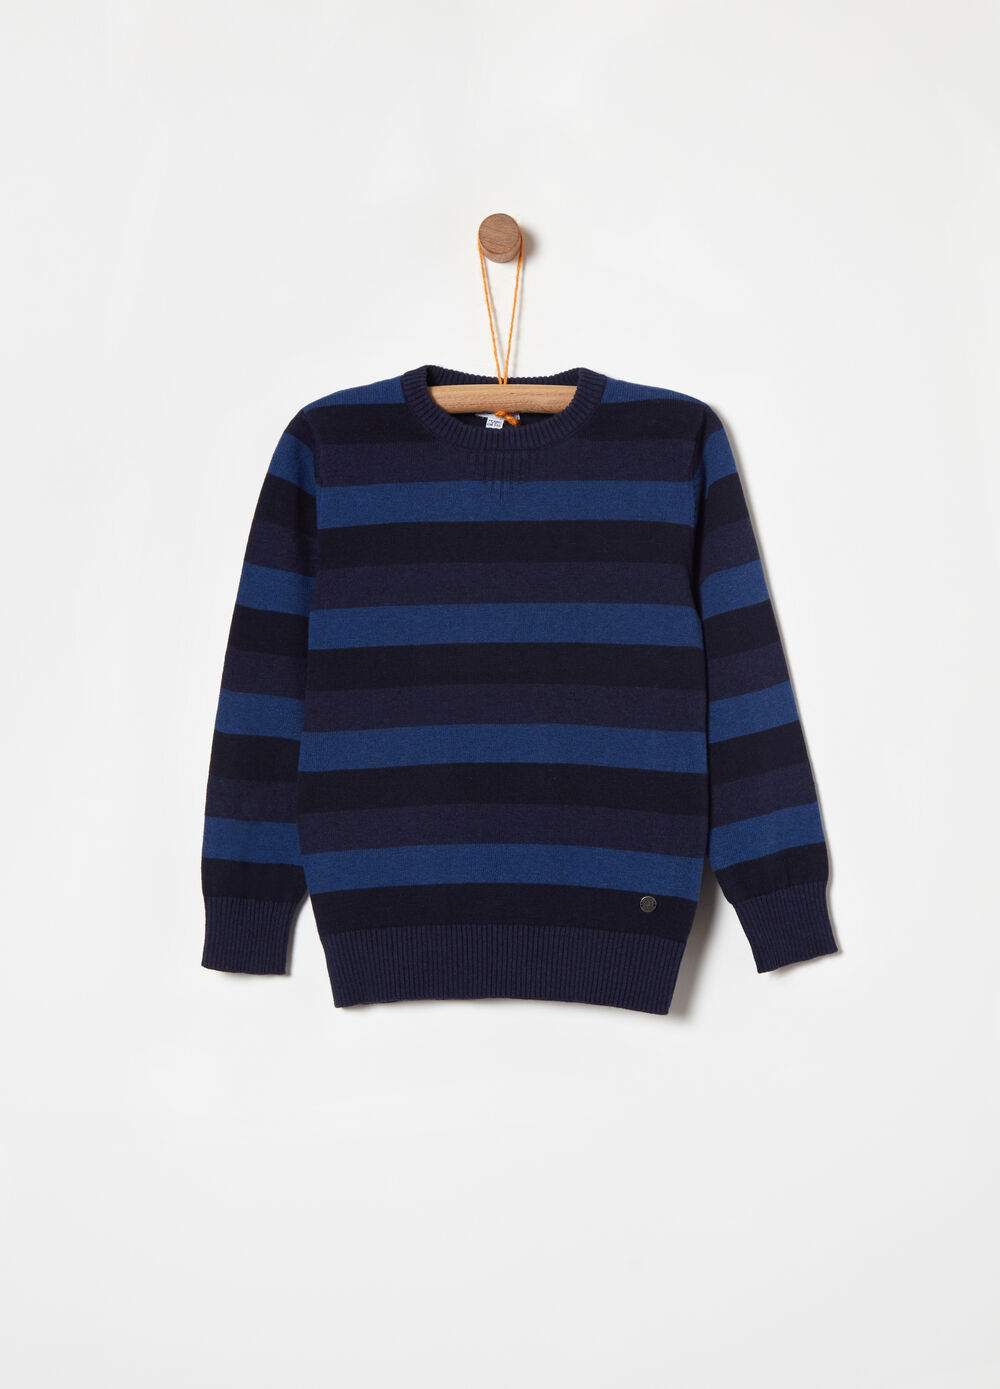 100% cotton pullover with jacquard stripe